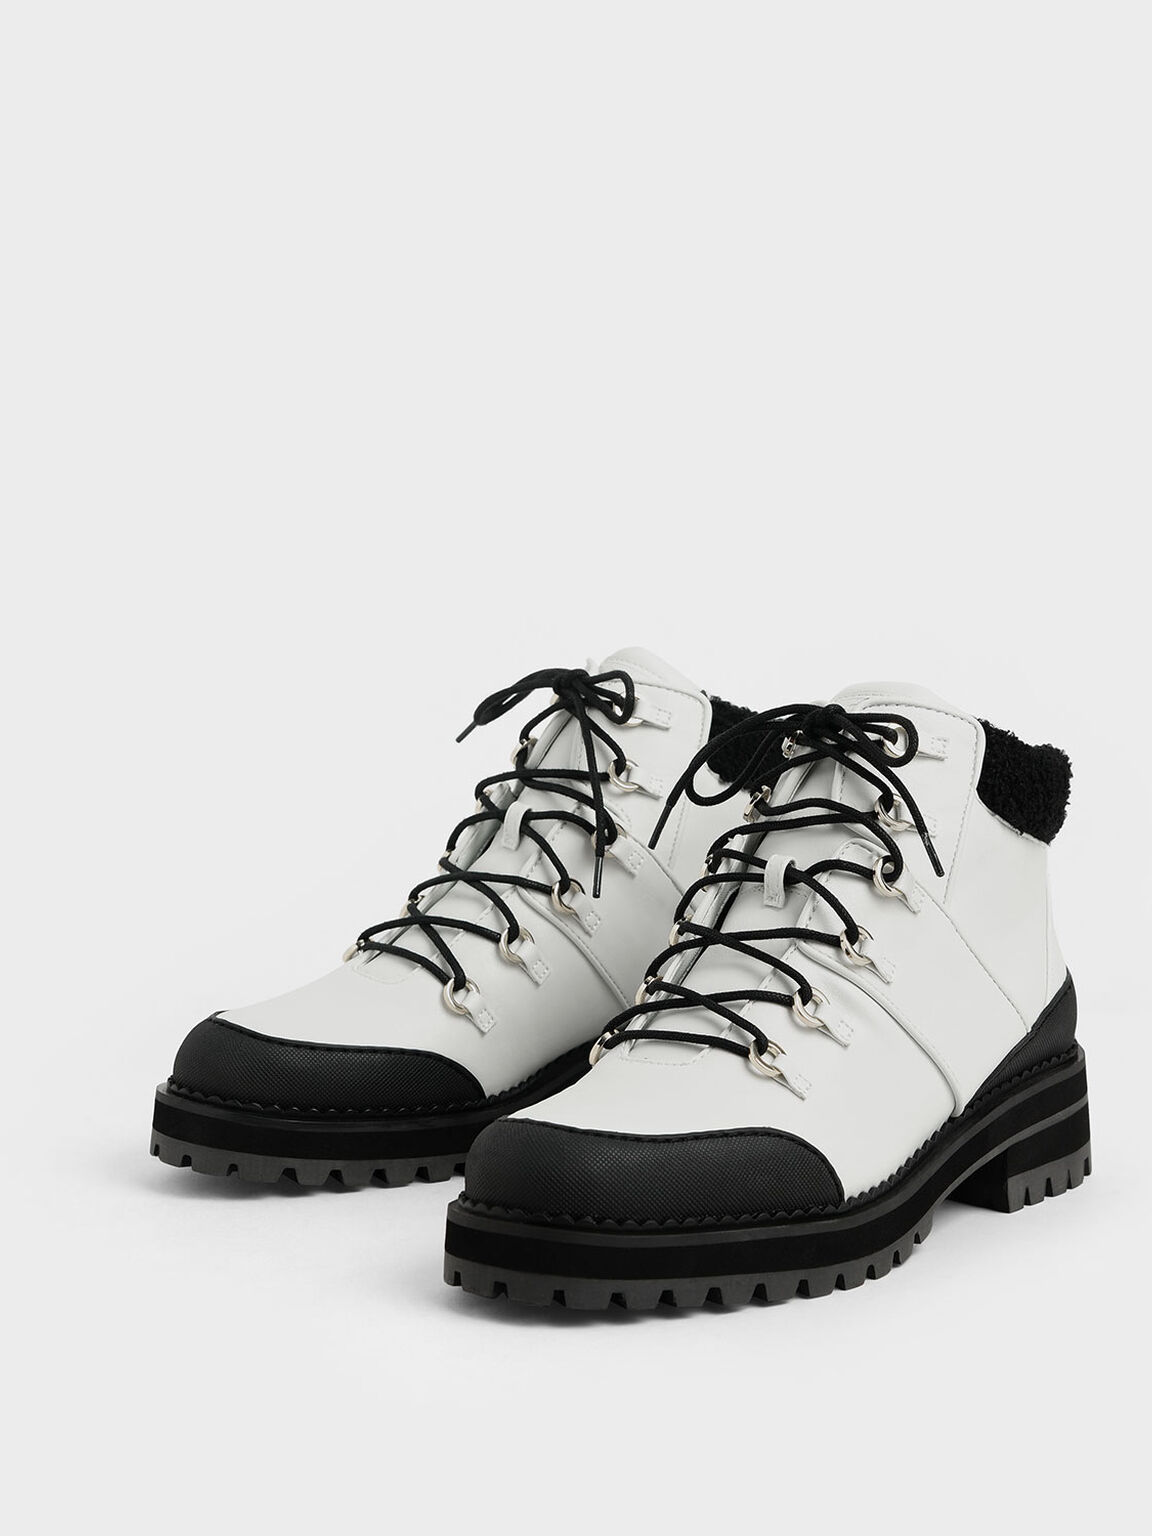 Two-Tone Lace-Up Hiking Boots, White, hi-res